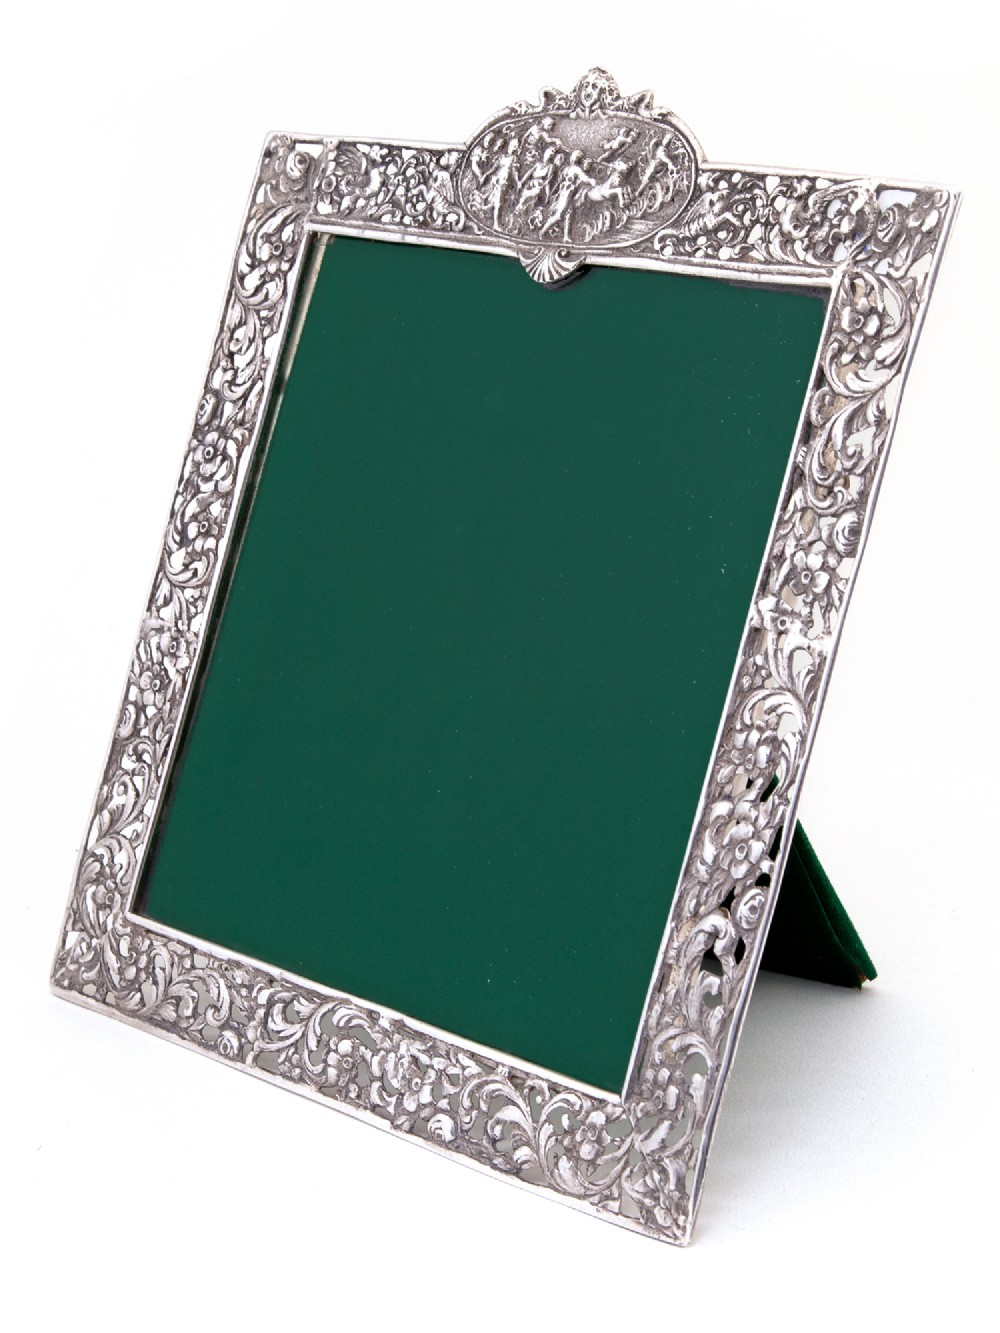 antique square silver photo picture frame with a cartouche depicting females and horses